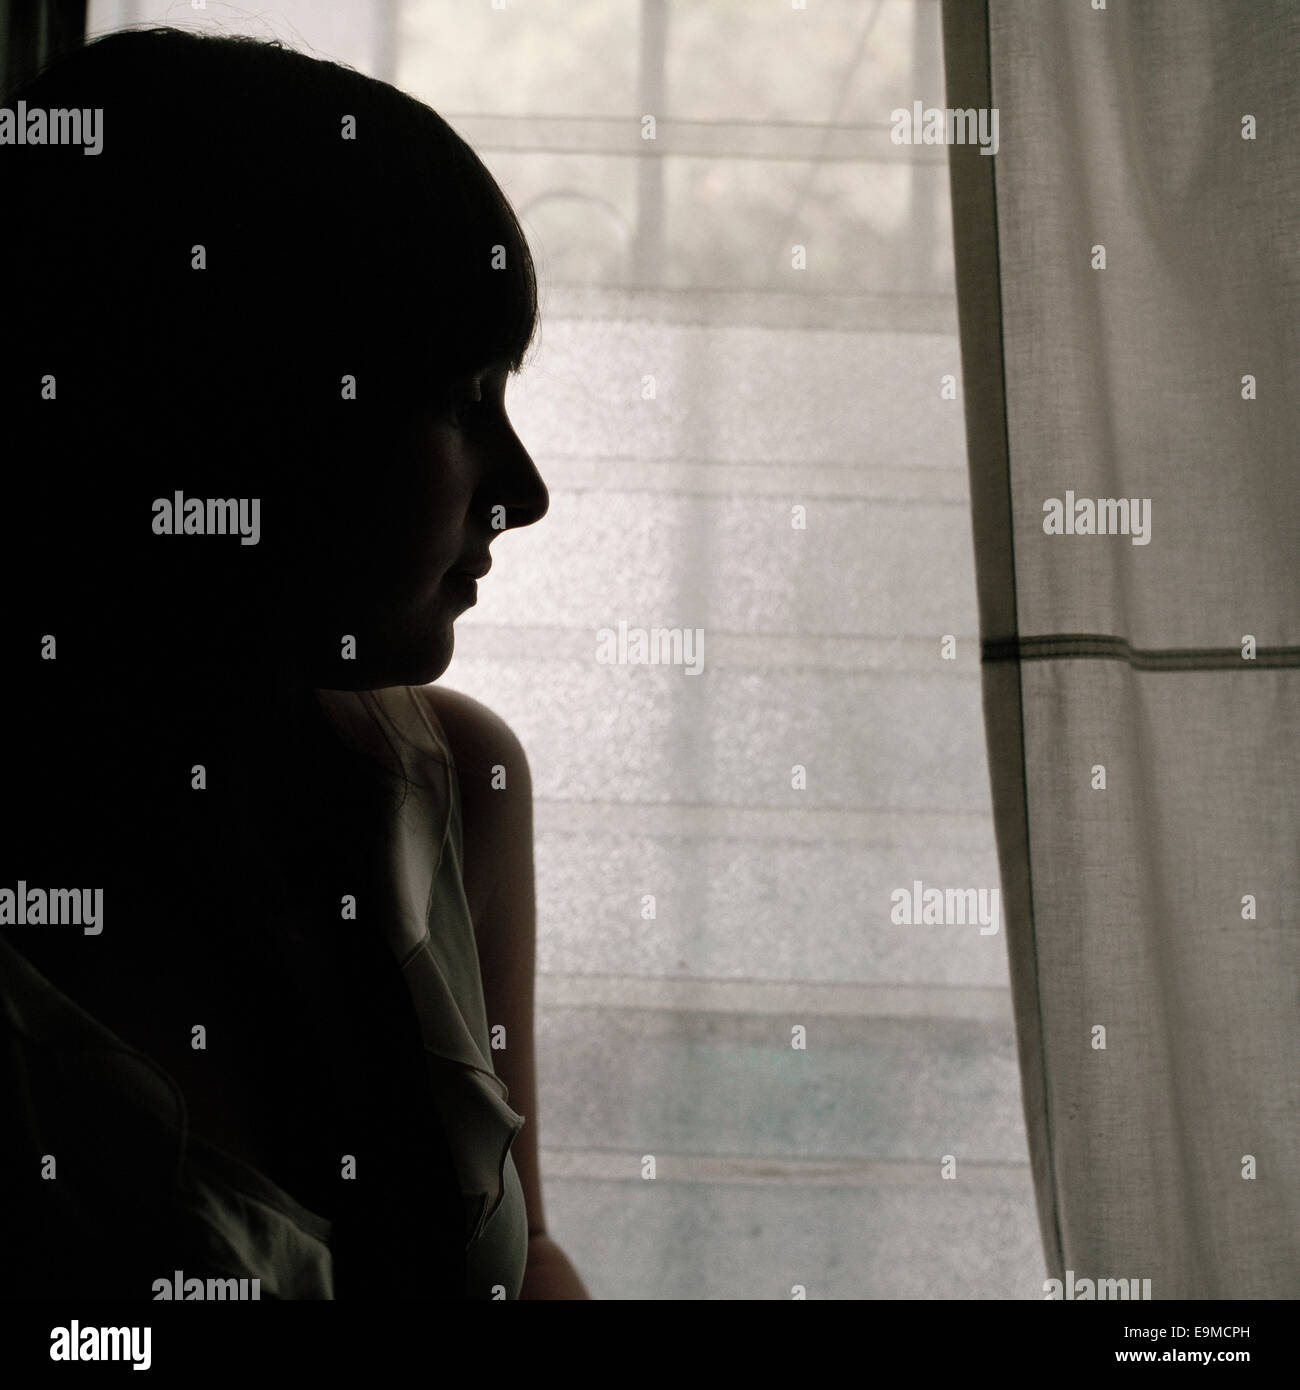 A woman standing next to a window Stock Photo